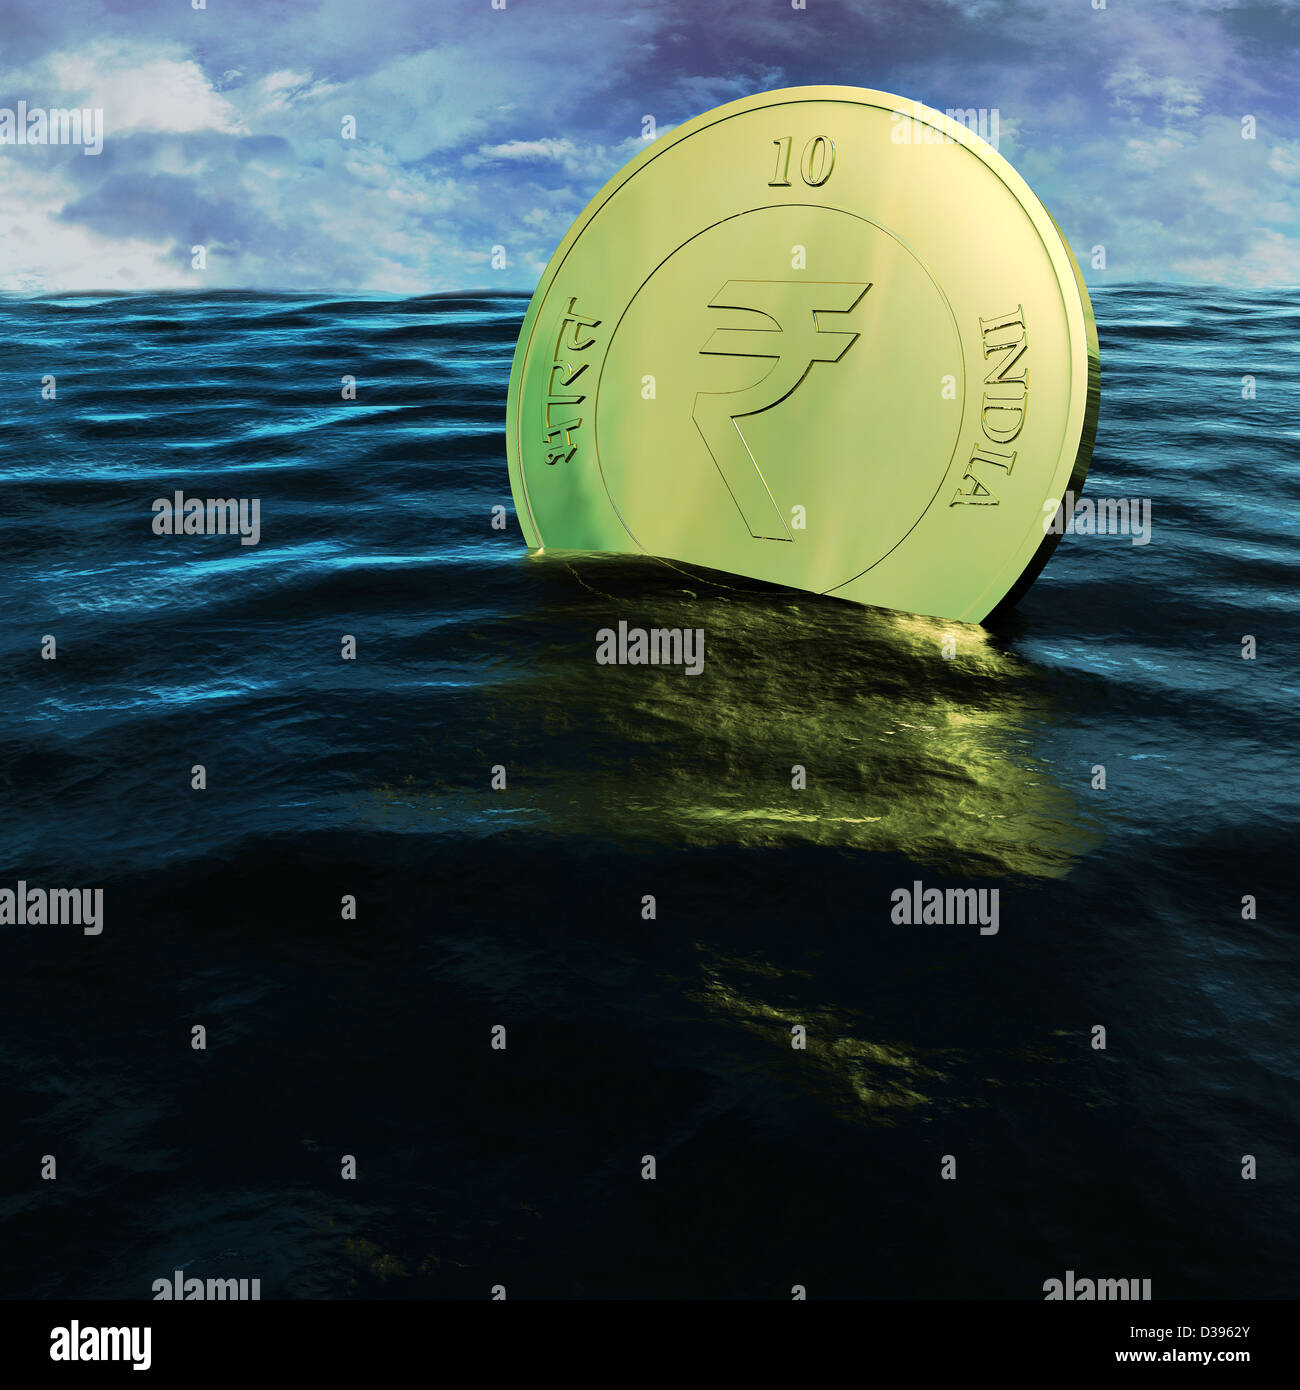 Conceptual shot of floating Indian coin depicting insolvency - Stock Image